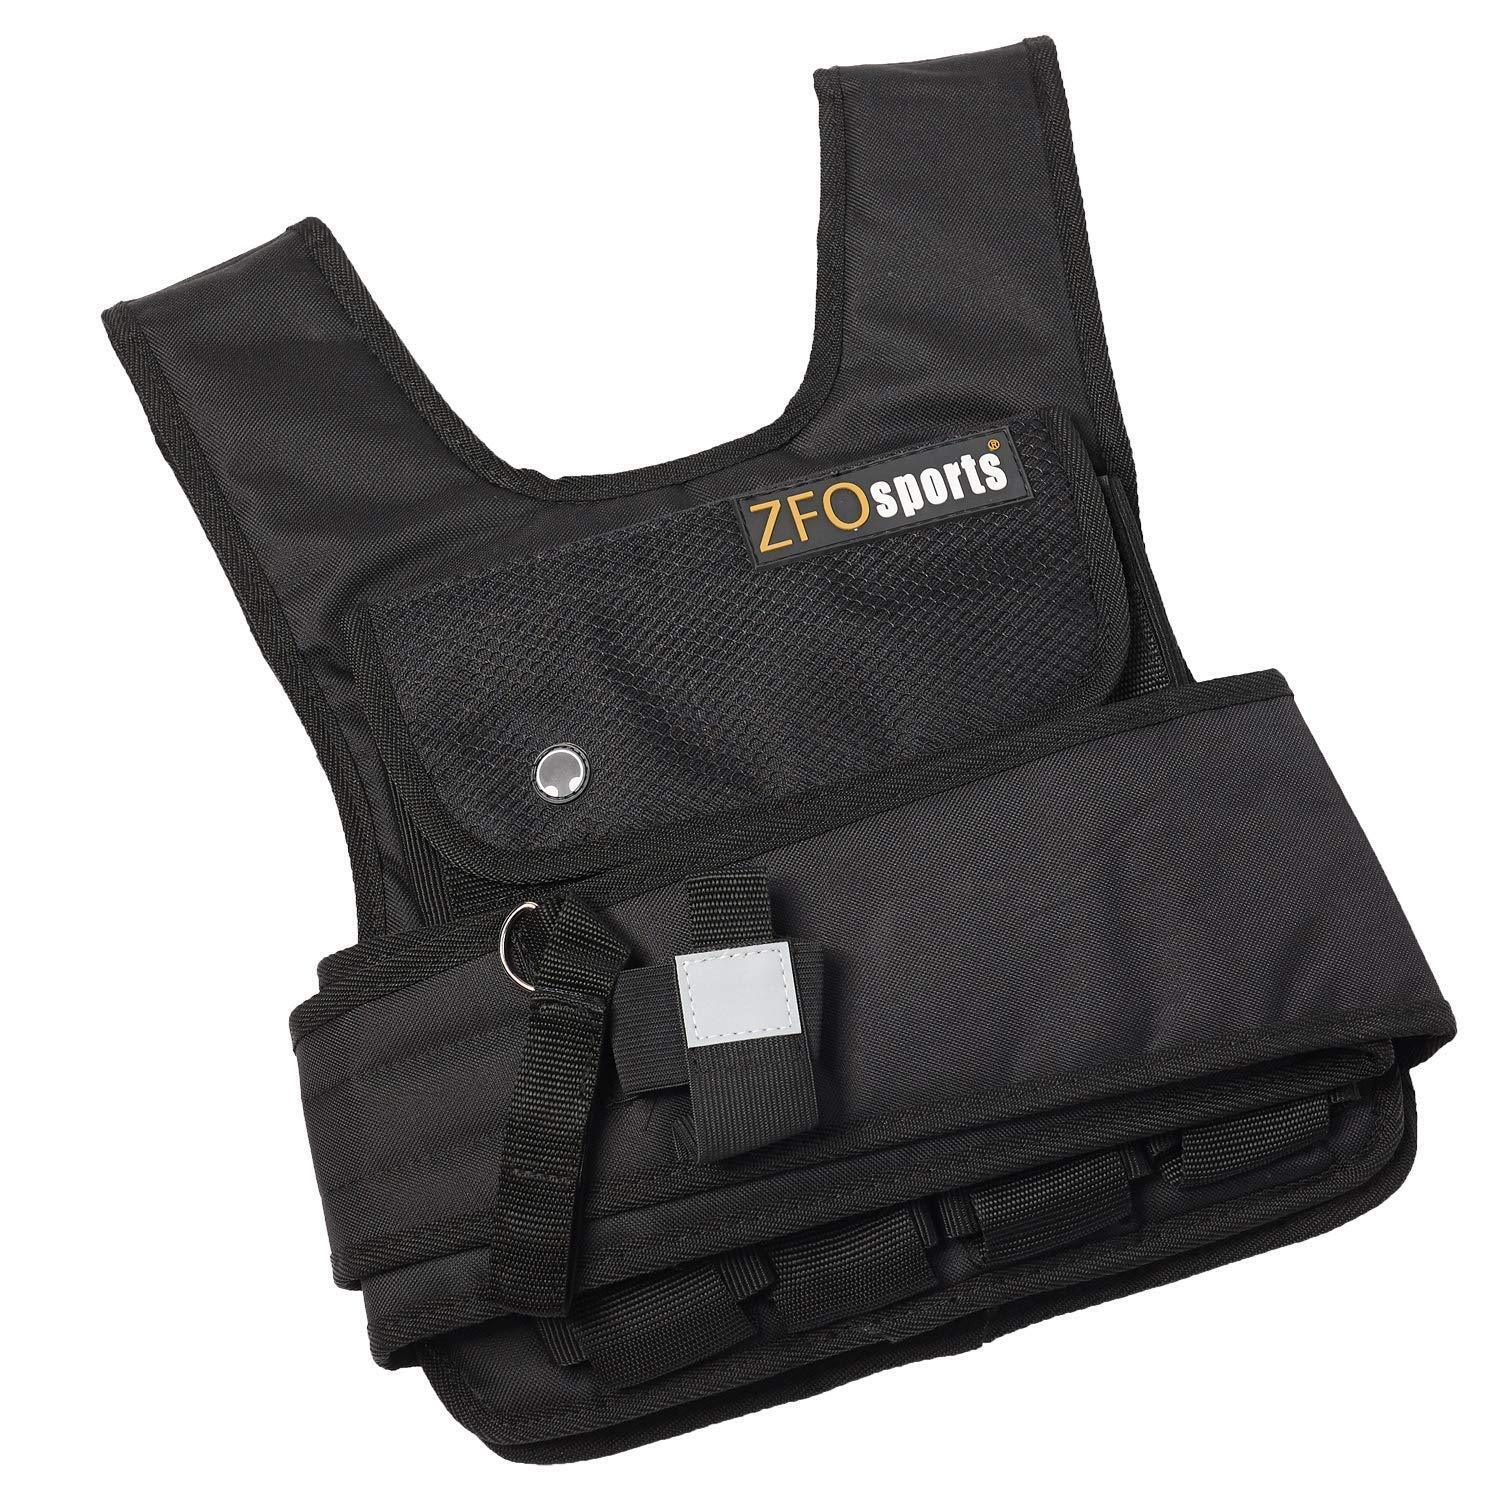 ZFOsports 50lbs SHORT  STYLE ADJUSTABLE WEIGHTED VEST  big discount prices